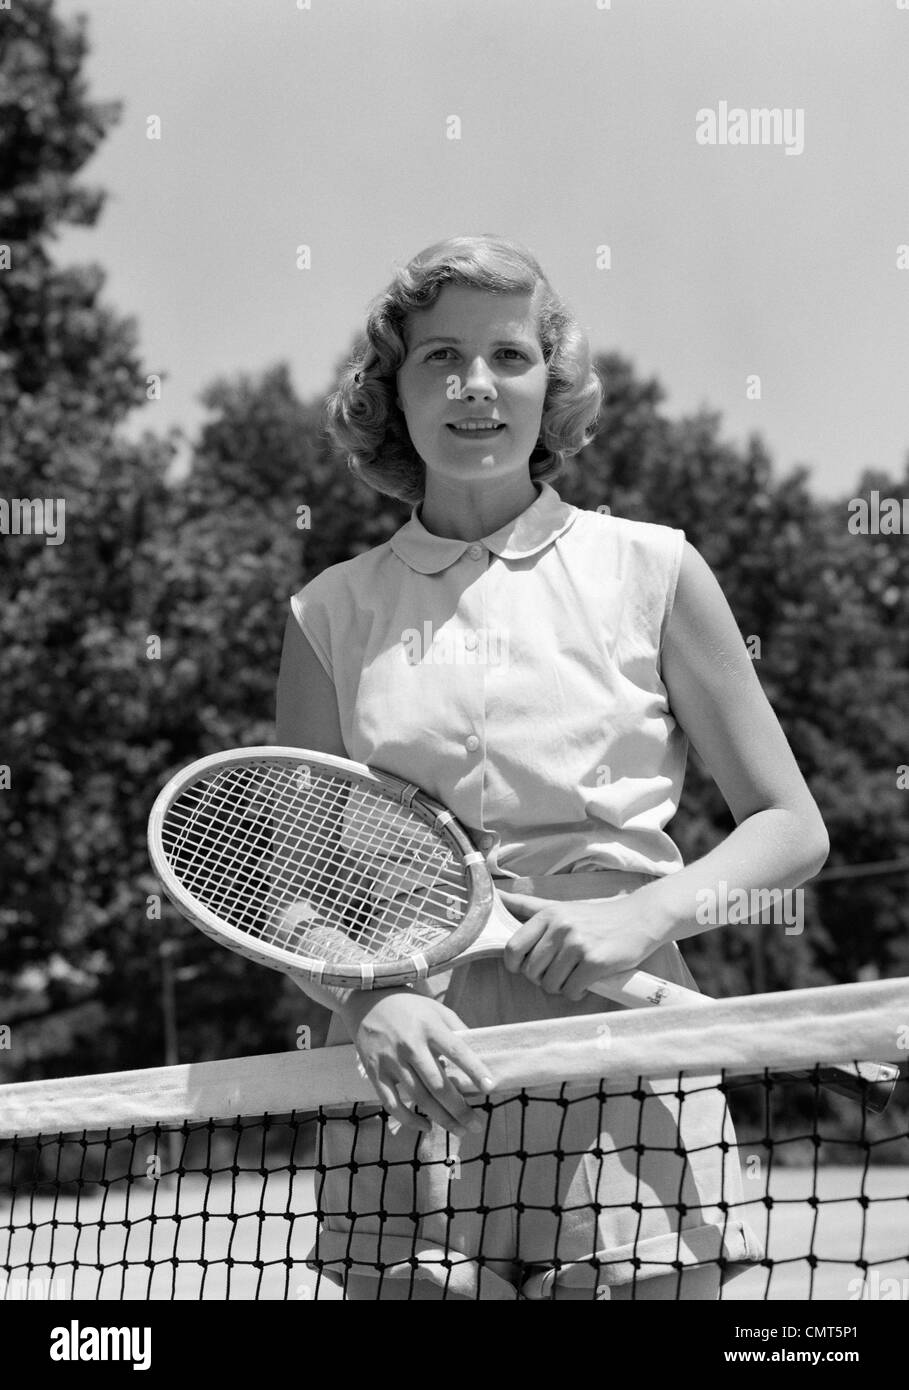 1950 PORTRAIT WOMAN HOLDING TENNIS RACQUET debout derrière l'extérieur NET LOOKING AT CAMERA Photo Stock